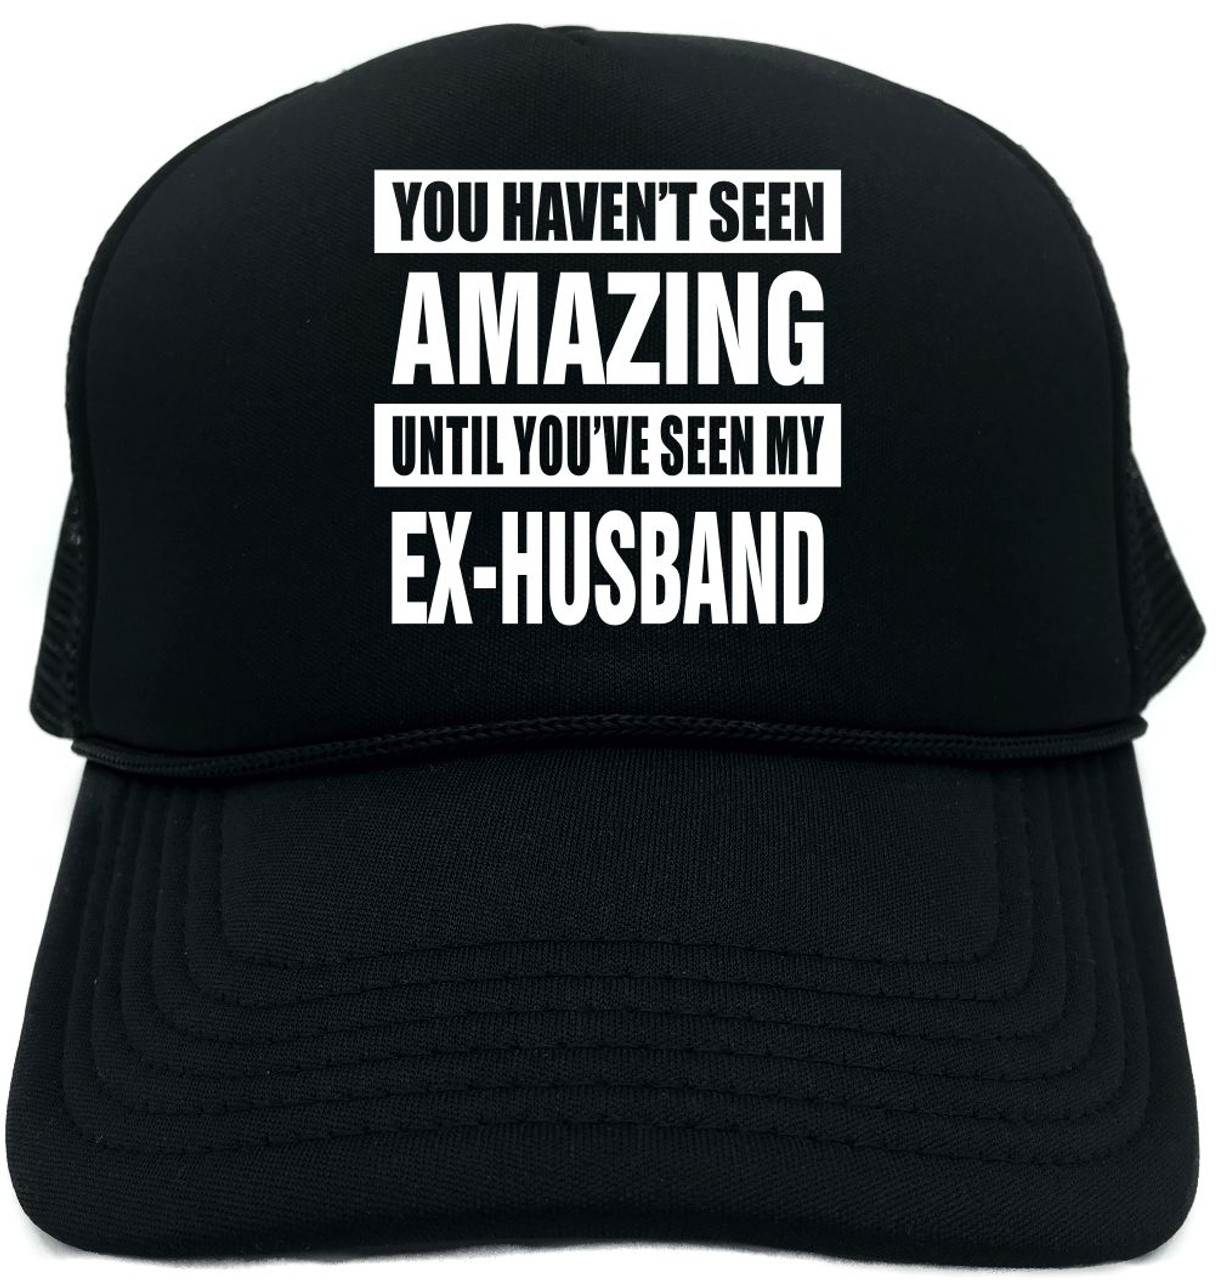 2415189528b41 HAVENT SEEN AMAZING  MY EX-HUSBAND Novelty Foam Trucker Hat